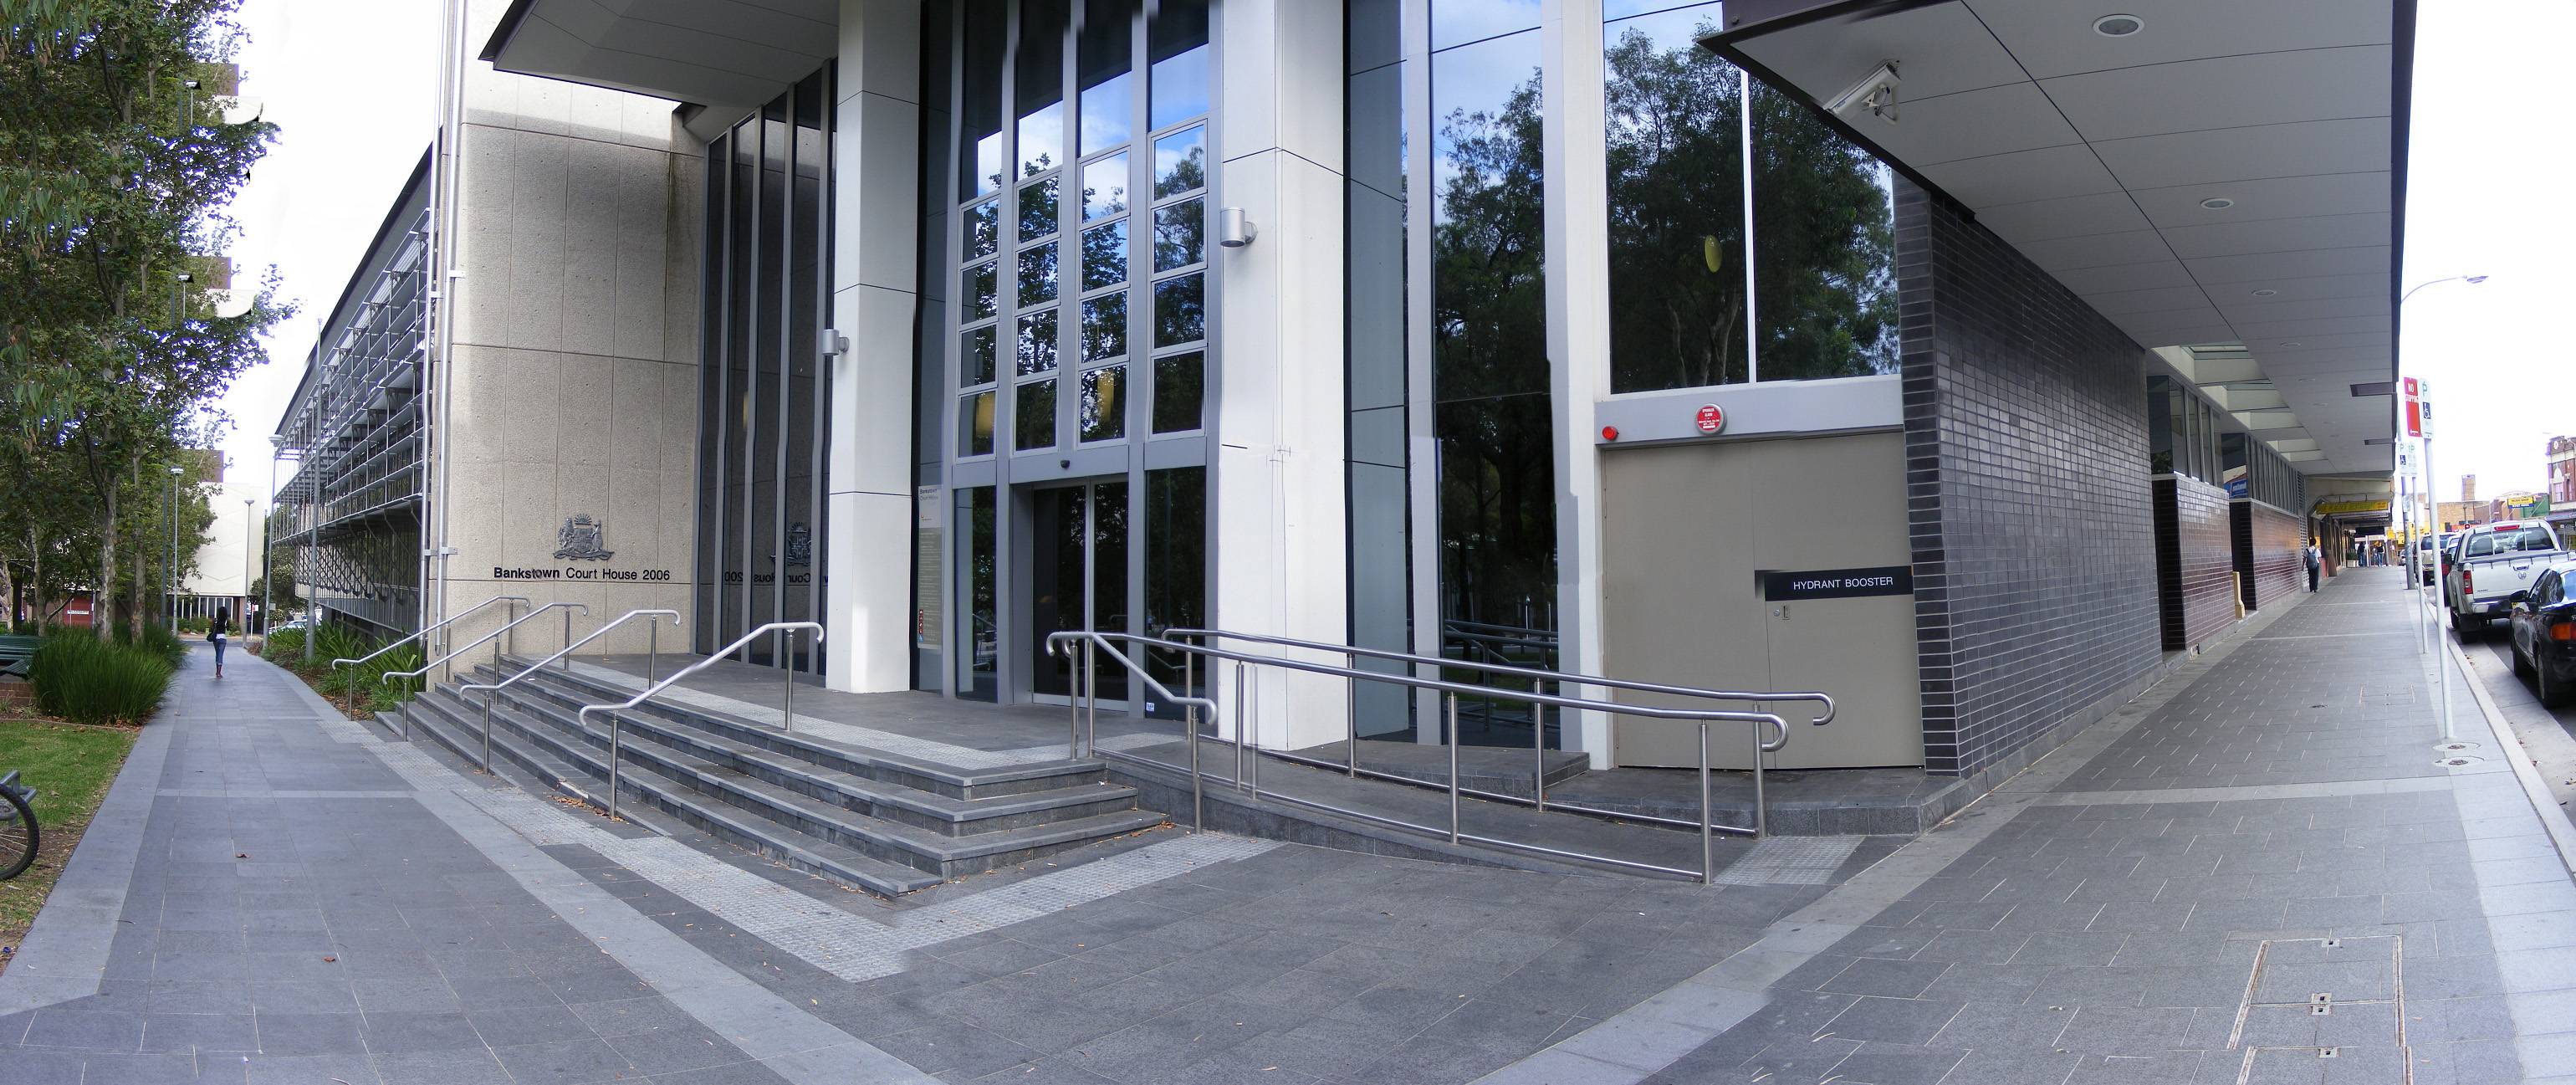 Panoramic image of Bankstown Court House in NSW Australia by Adam JWC